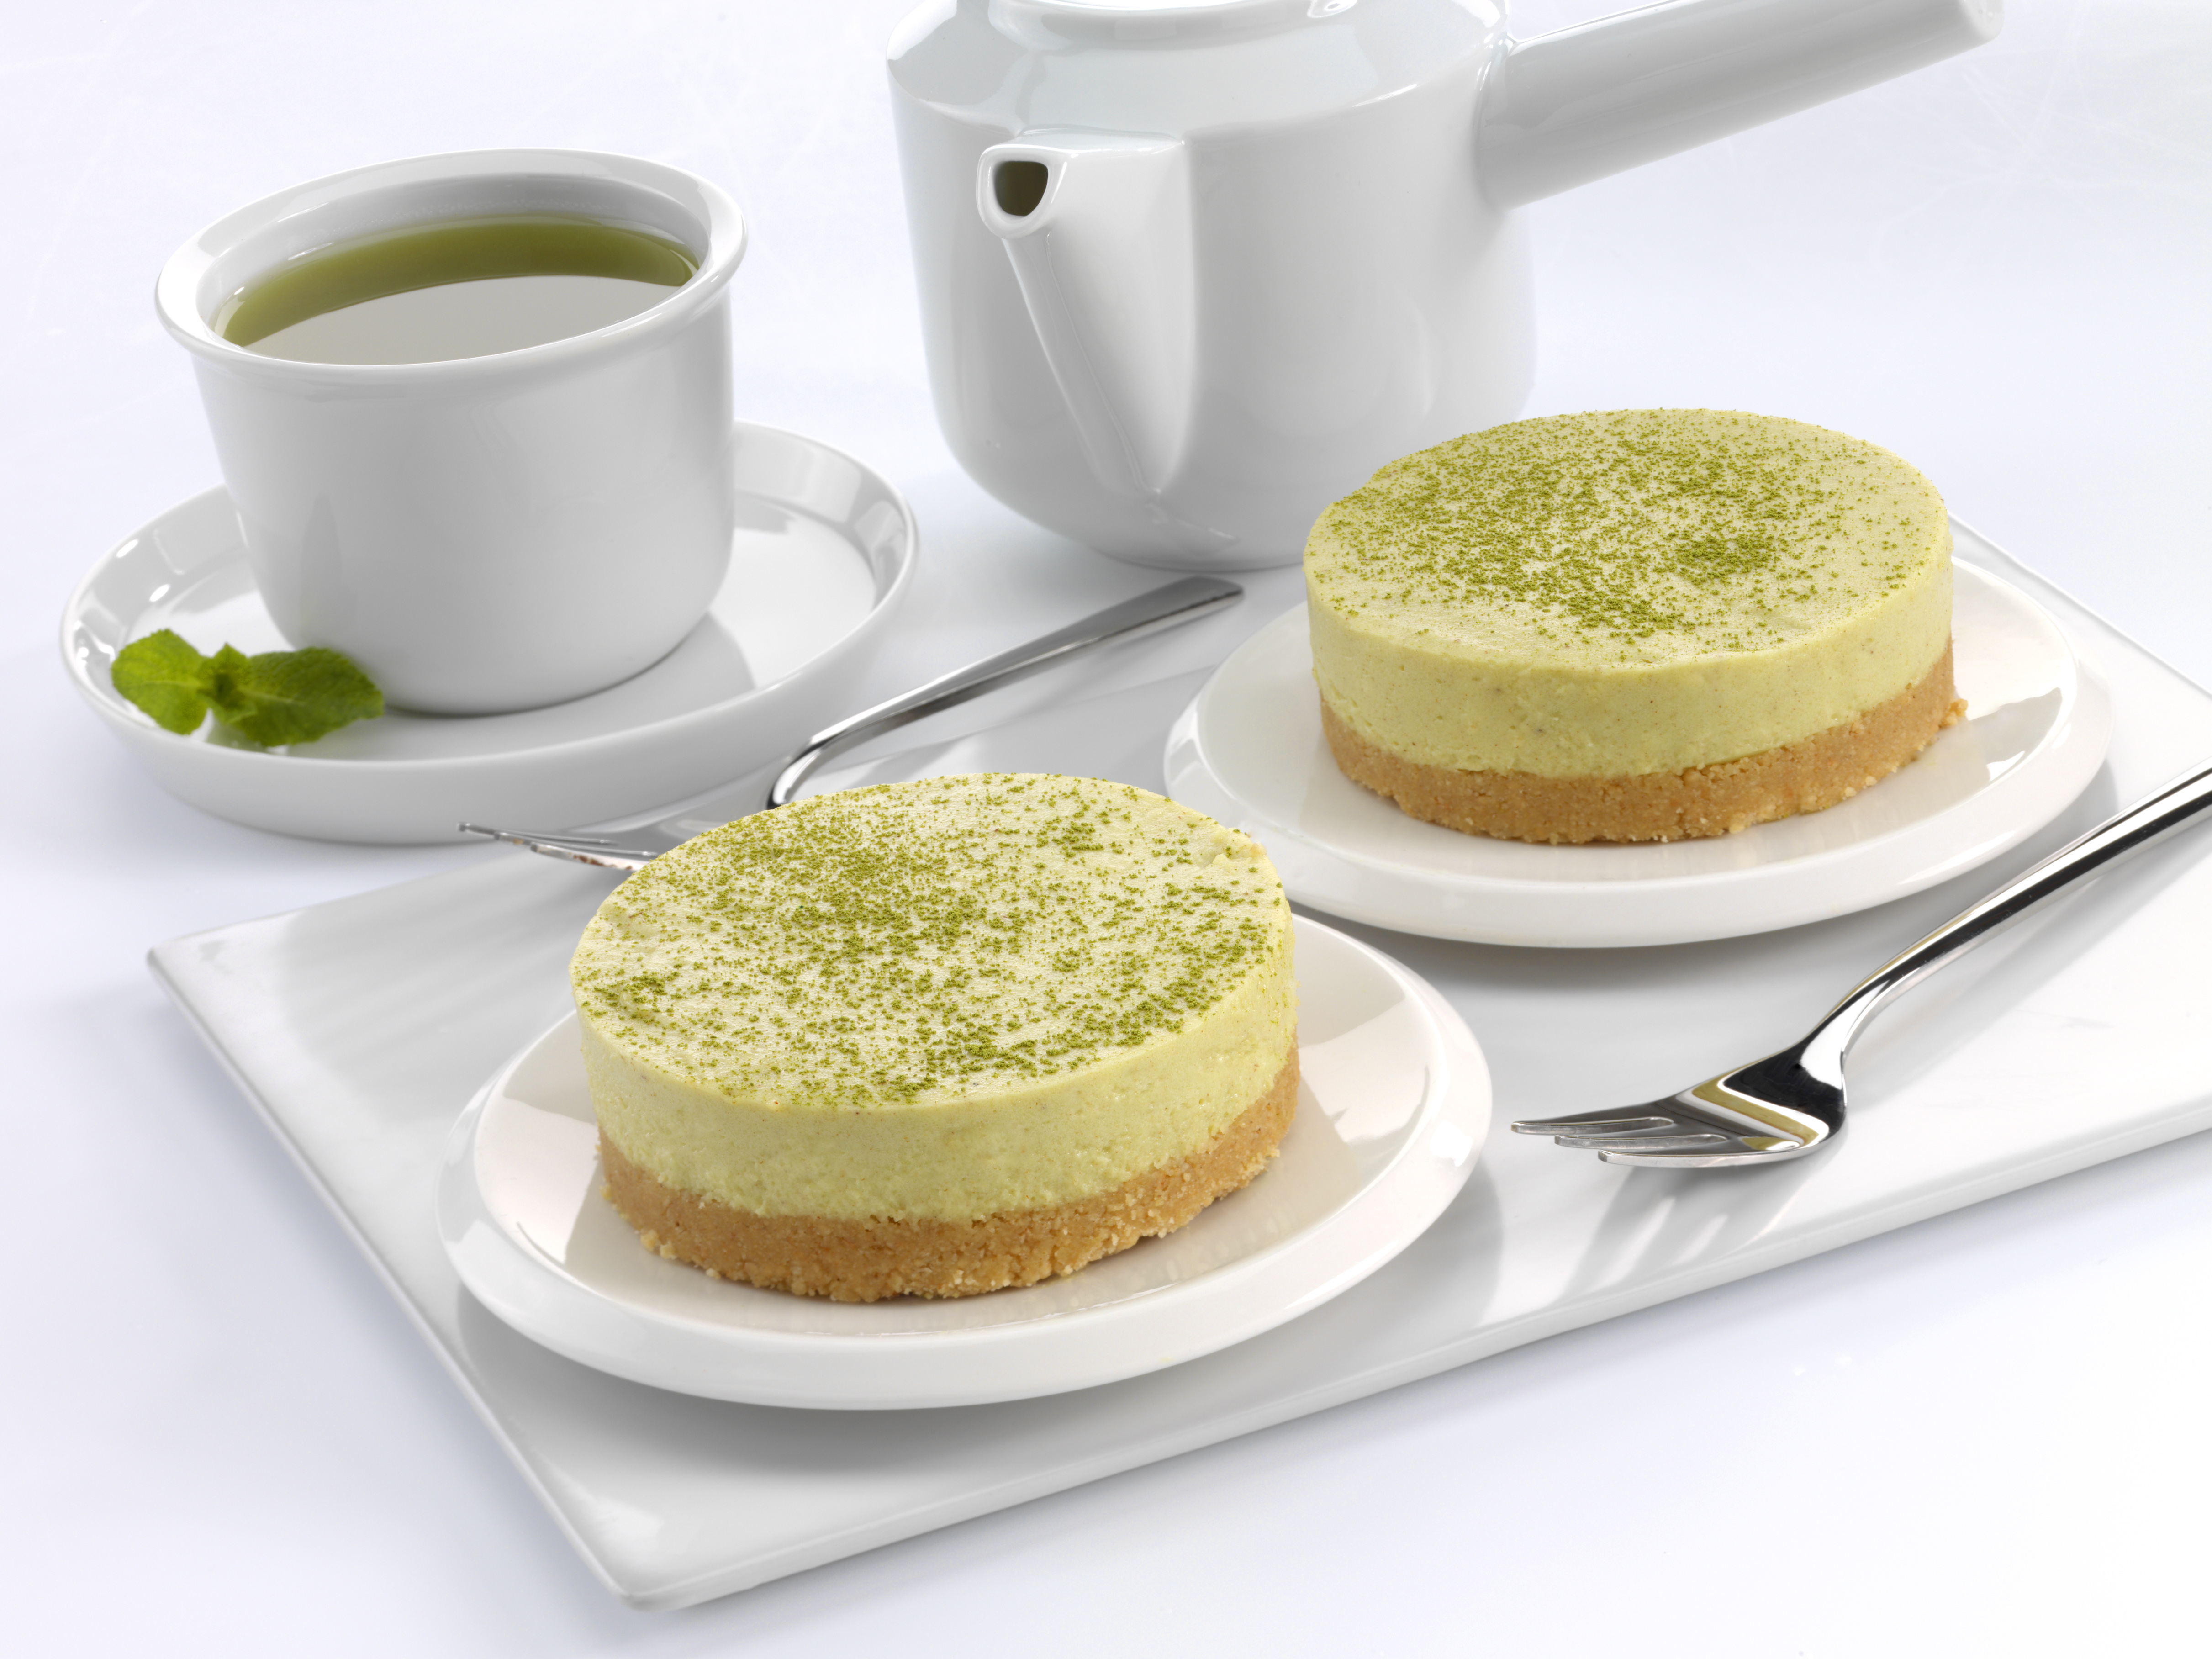 Mini Matcha Cheesecake Recipes